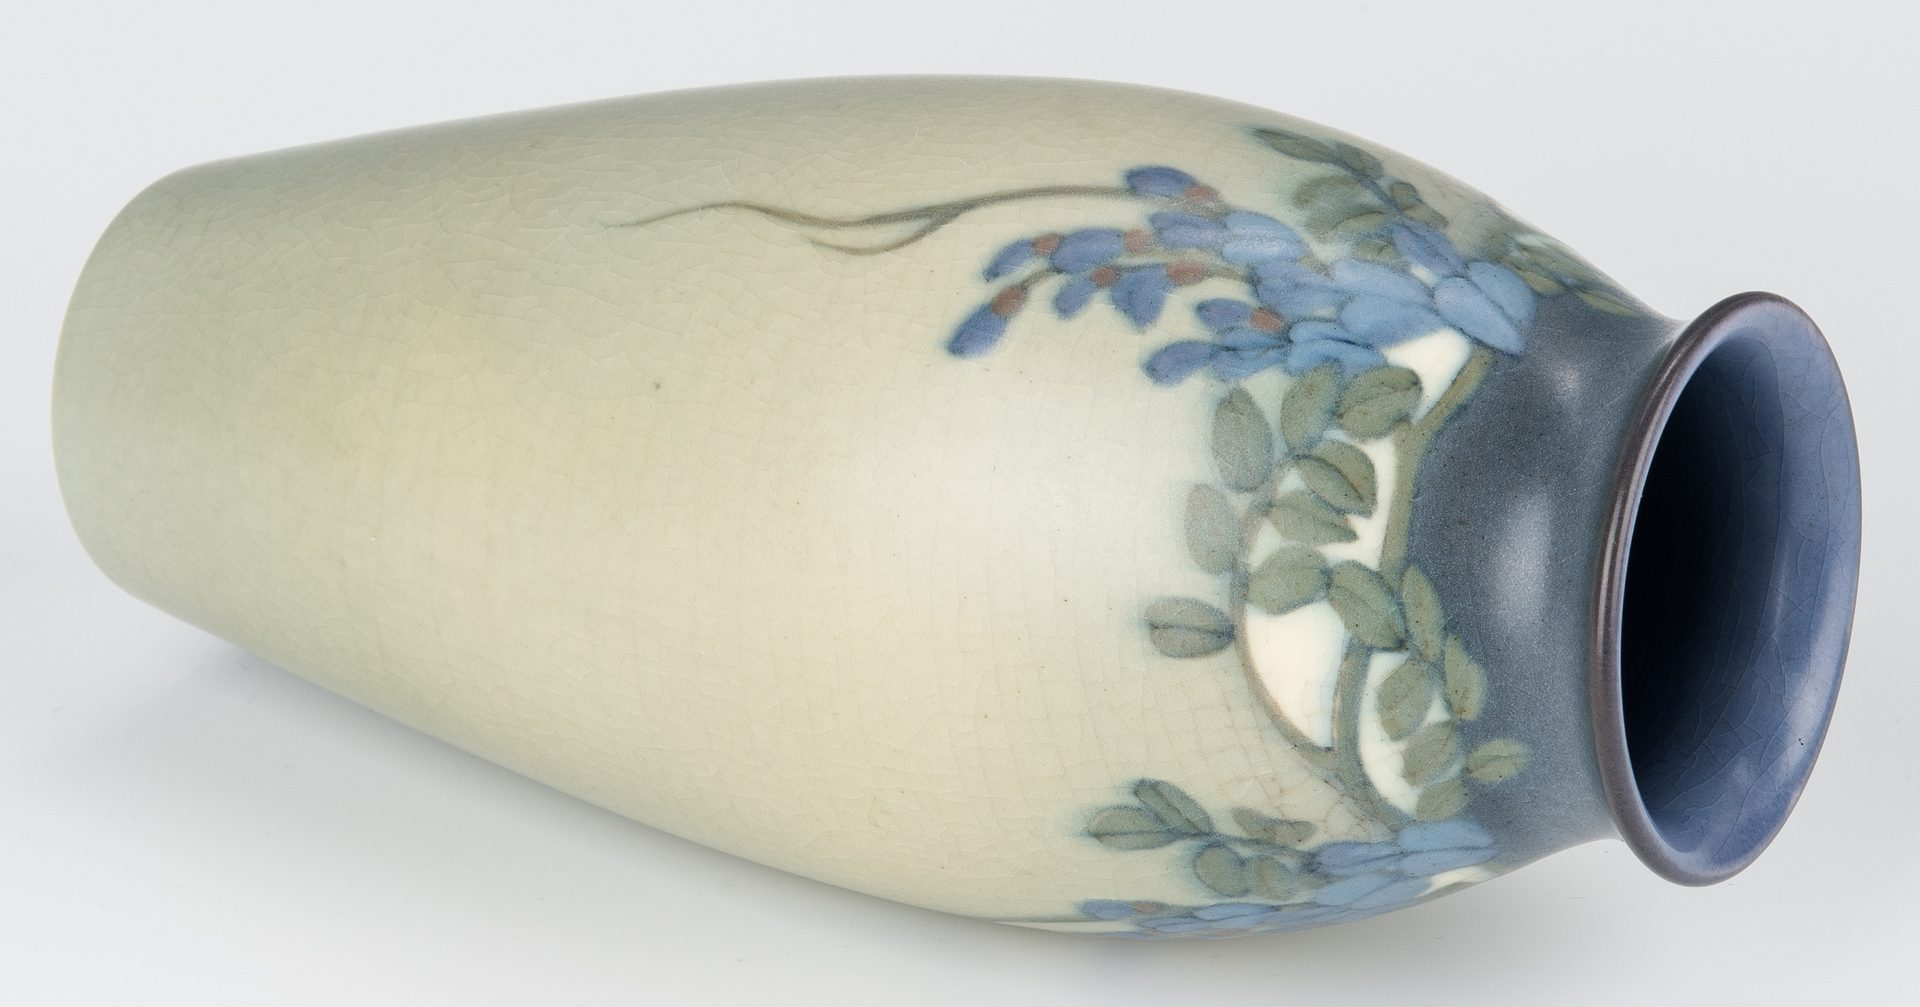 Lot 580: Rookwood Art Pottery Vase, Lenore Asbury